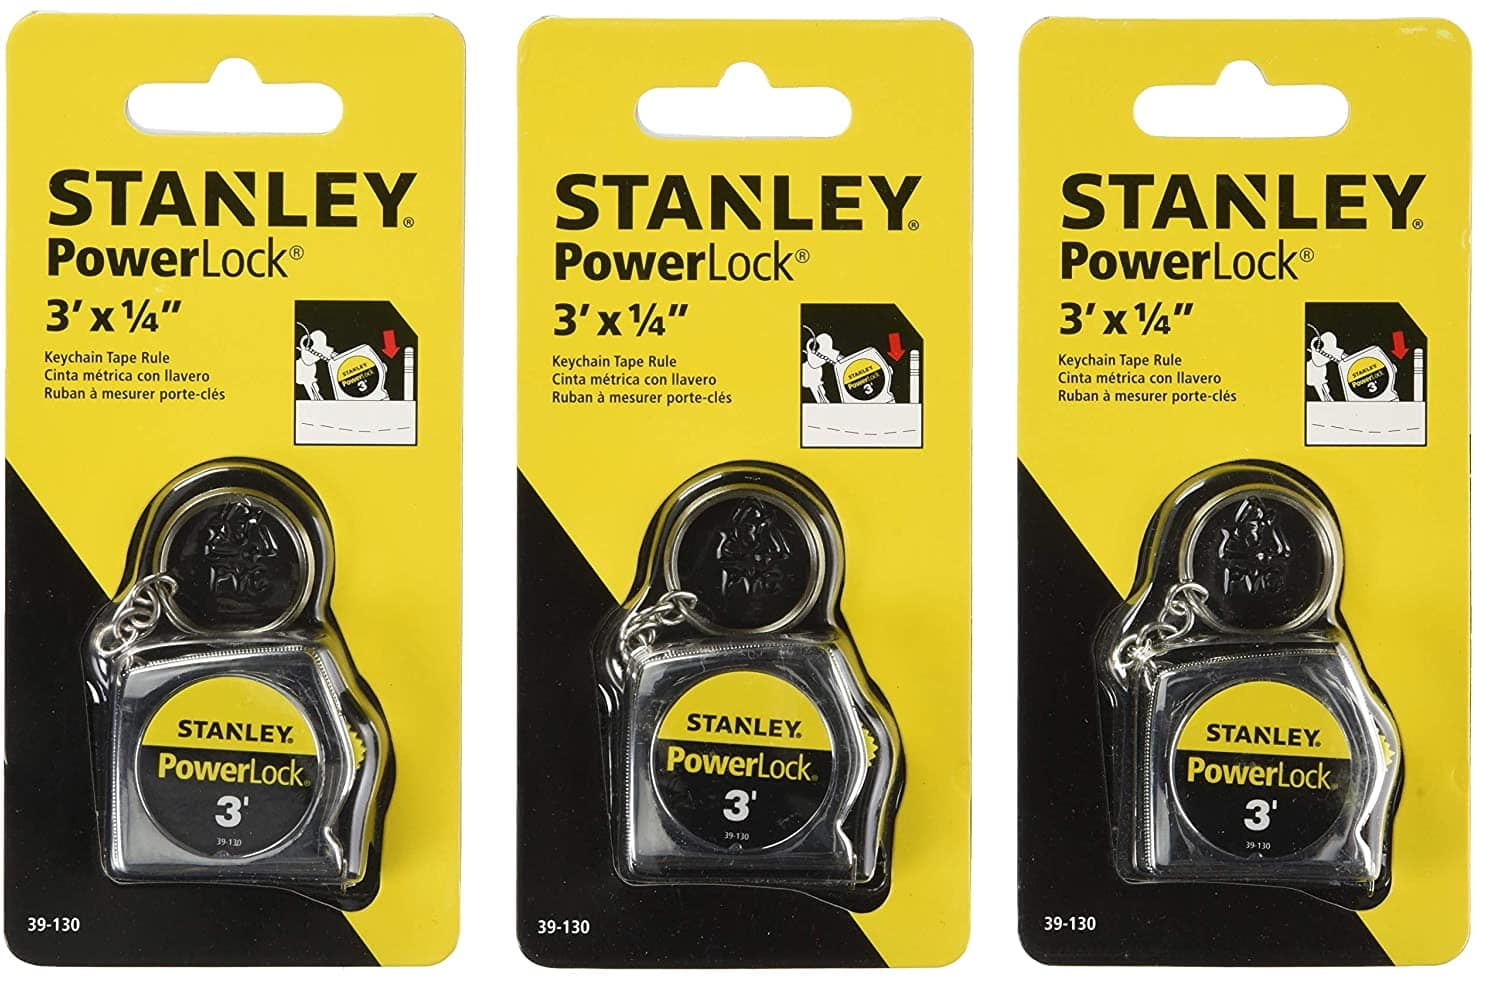 3 pack of Stanley of 3 ft PowerLock Key Tape Rule - Hand Tools for Keychain 39-130 $5.99